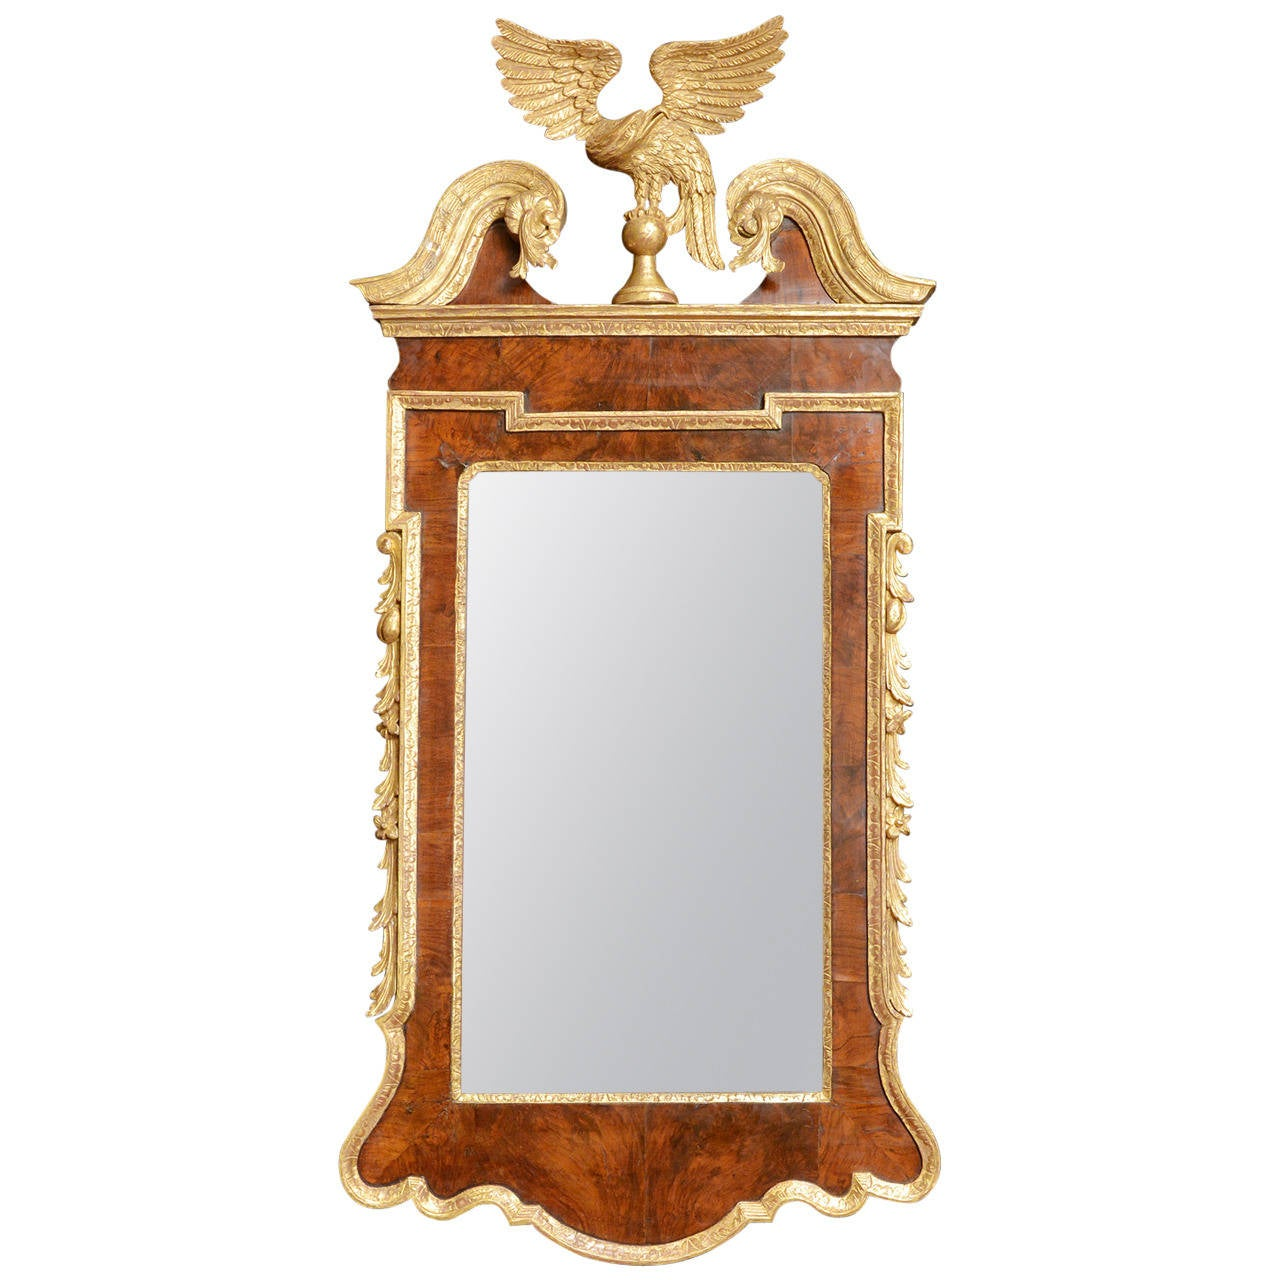 George ii walnut and parcel gilt mirror at 1stdibs for What is a gilt mirror